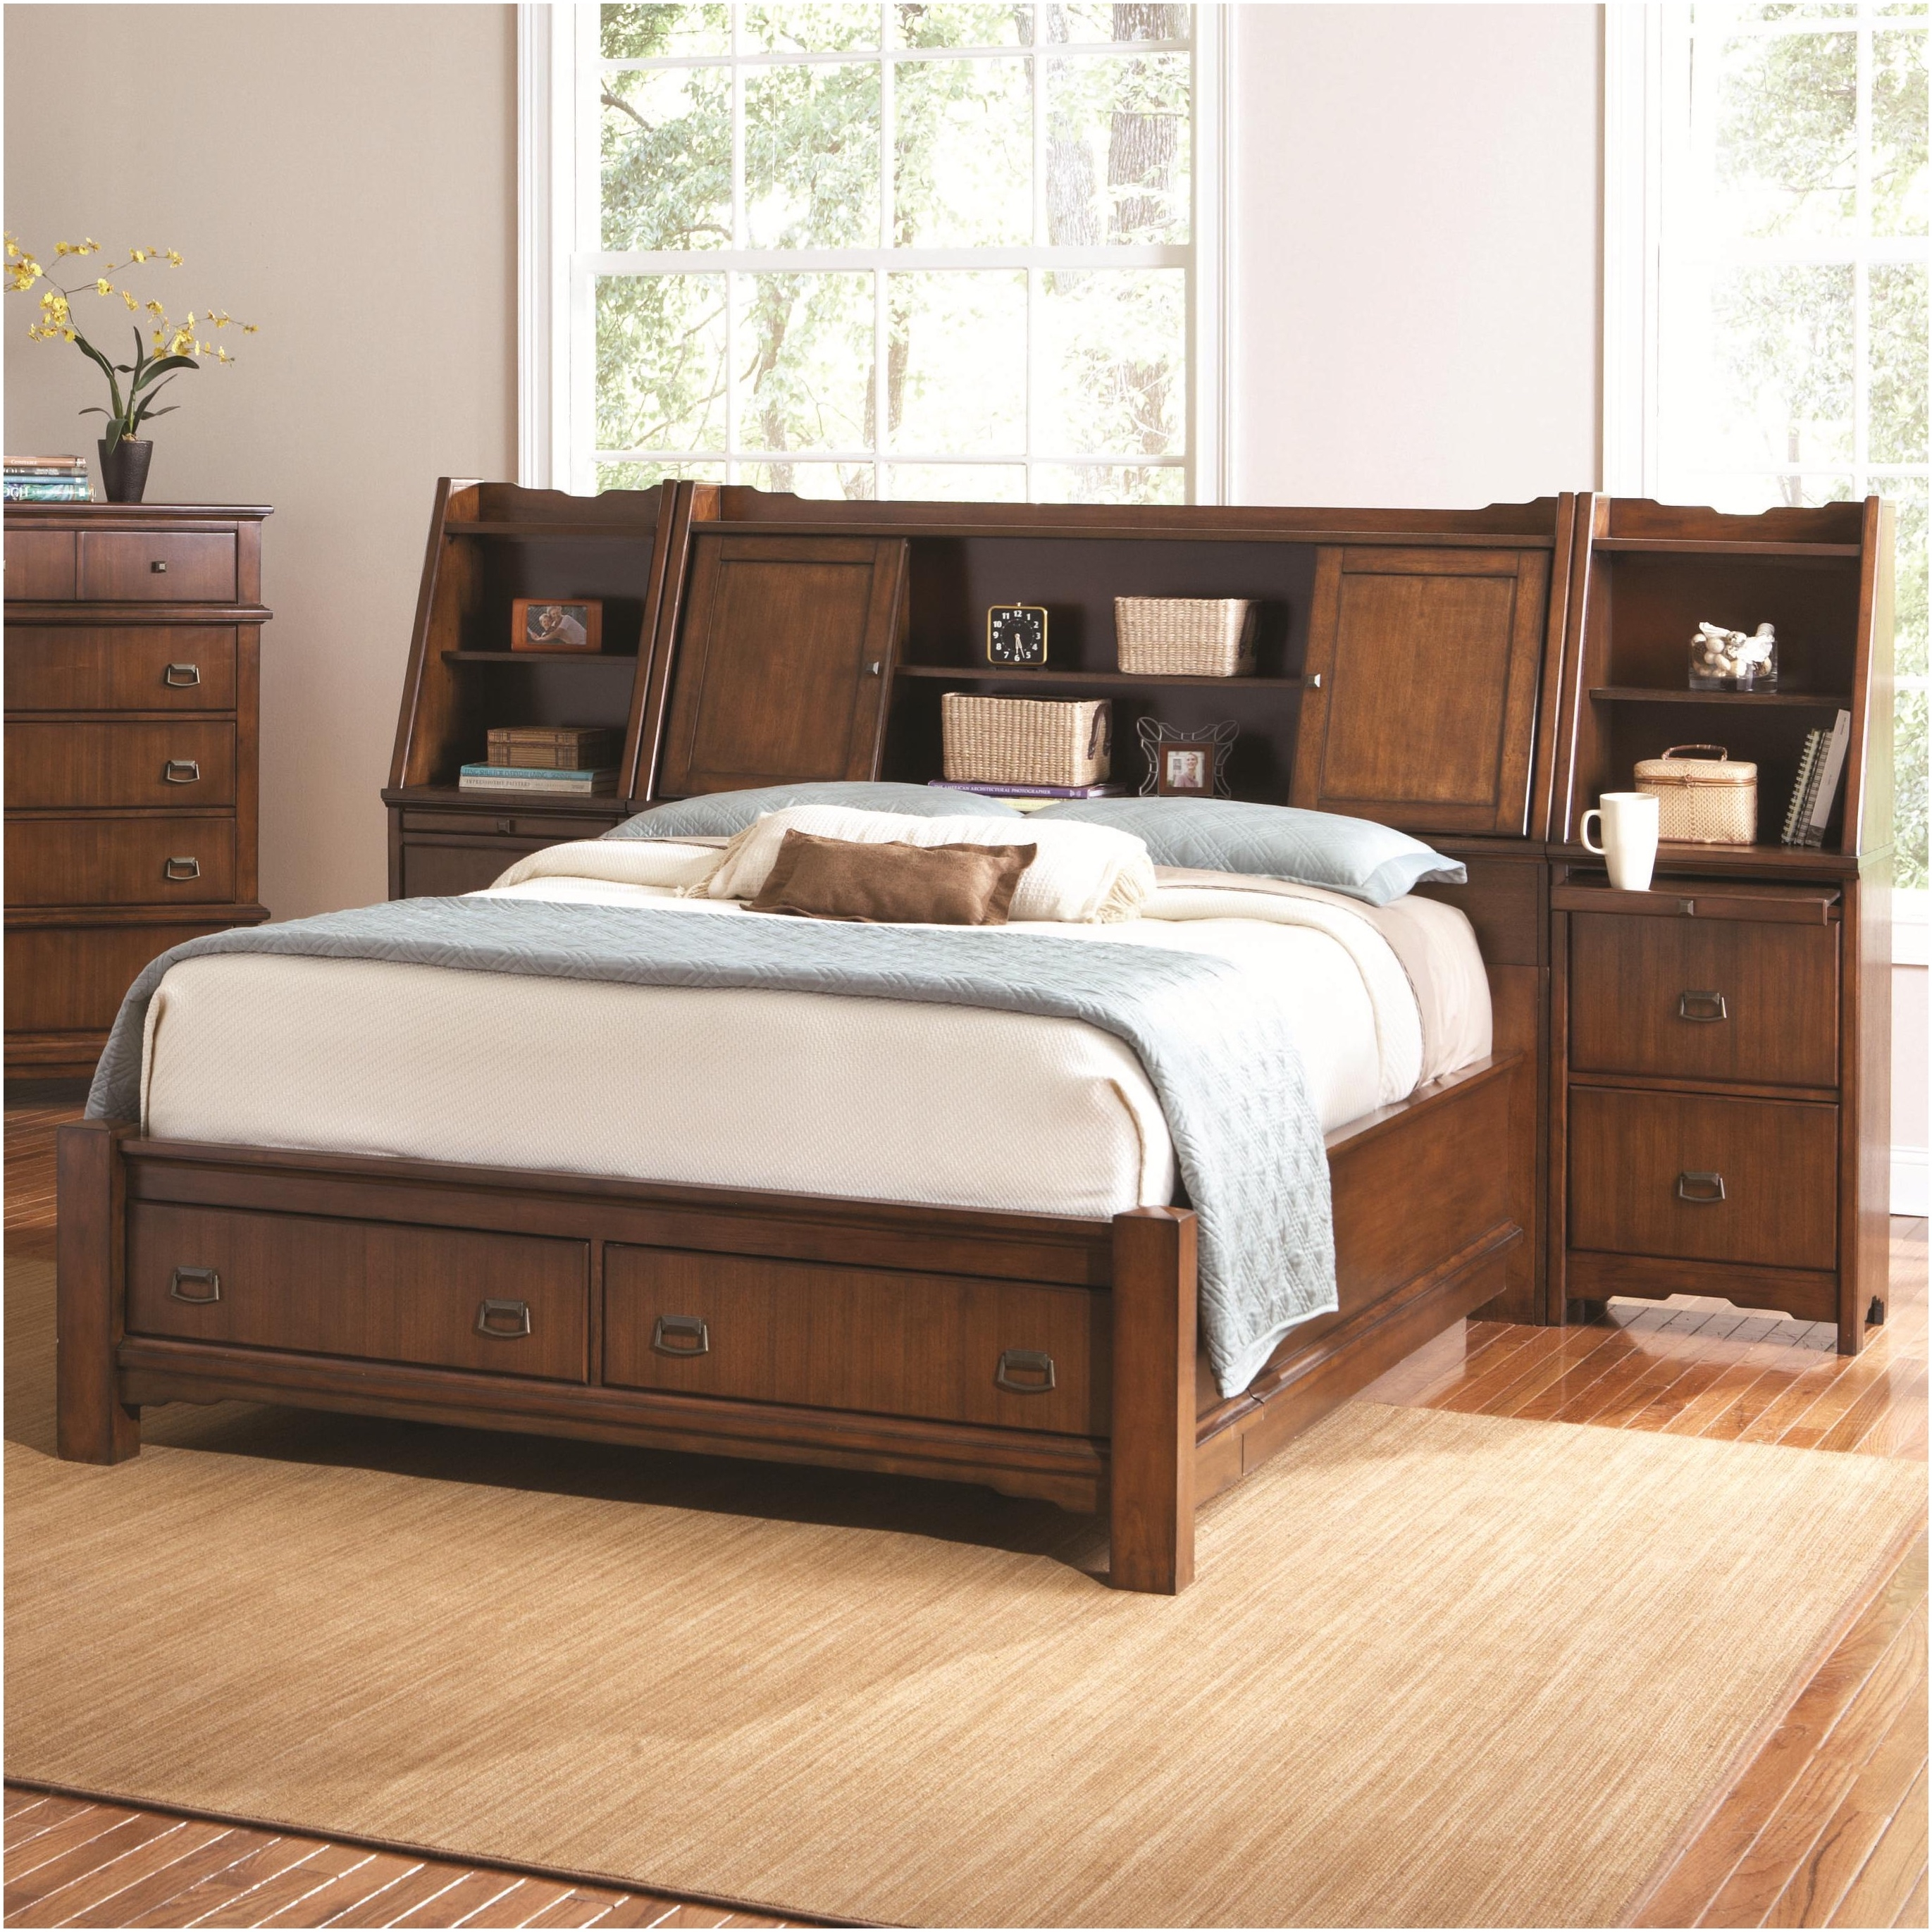 Permalink to Double Bed Frame With Storage Headboard